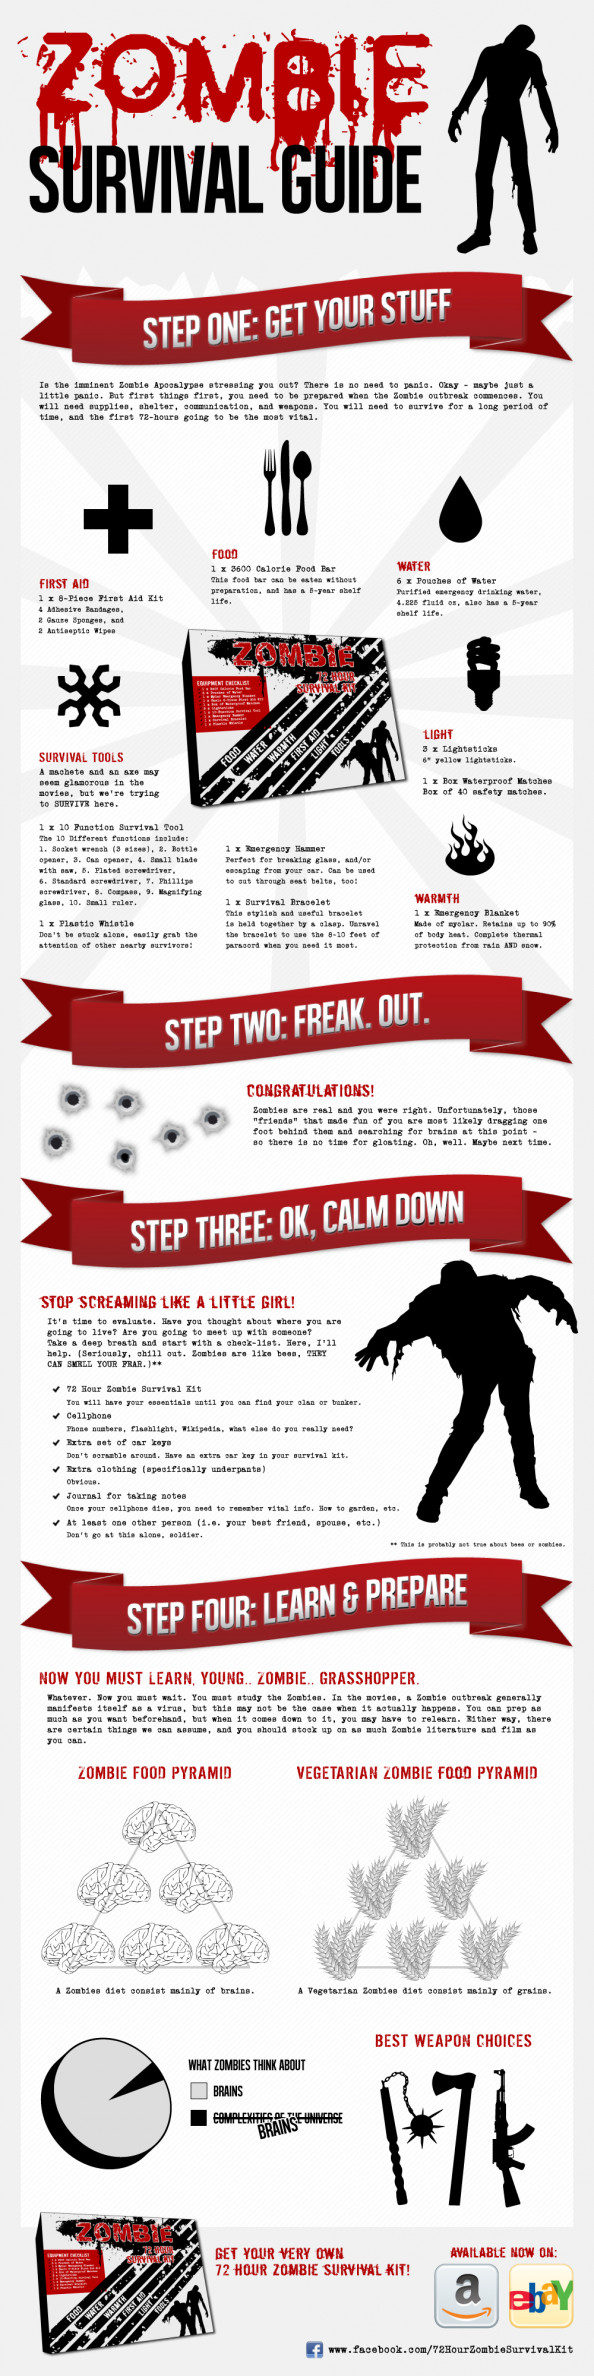 Zombie Survival Guide Infographic